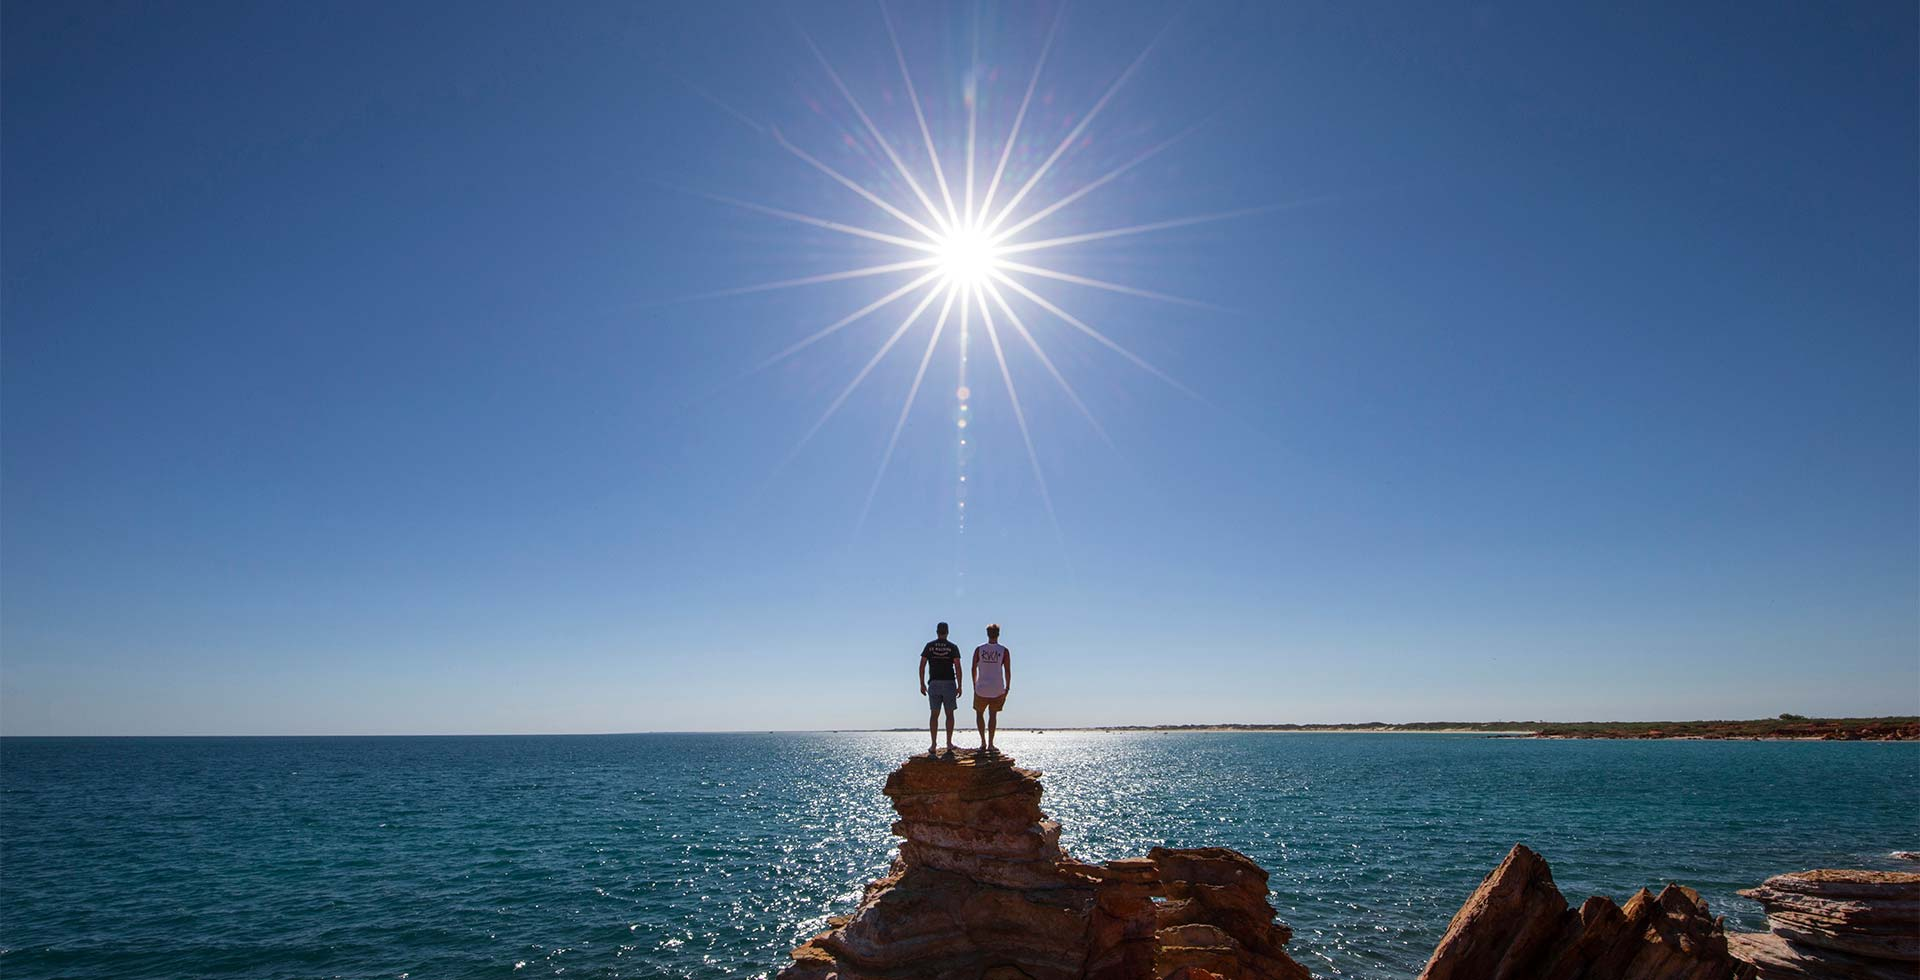 Spectacular cliffside views from Gantheaume Point in Broome!